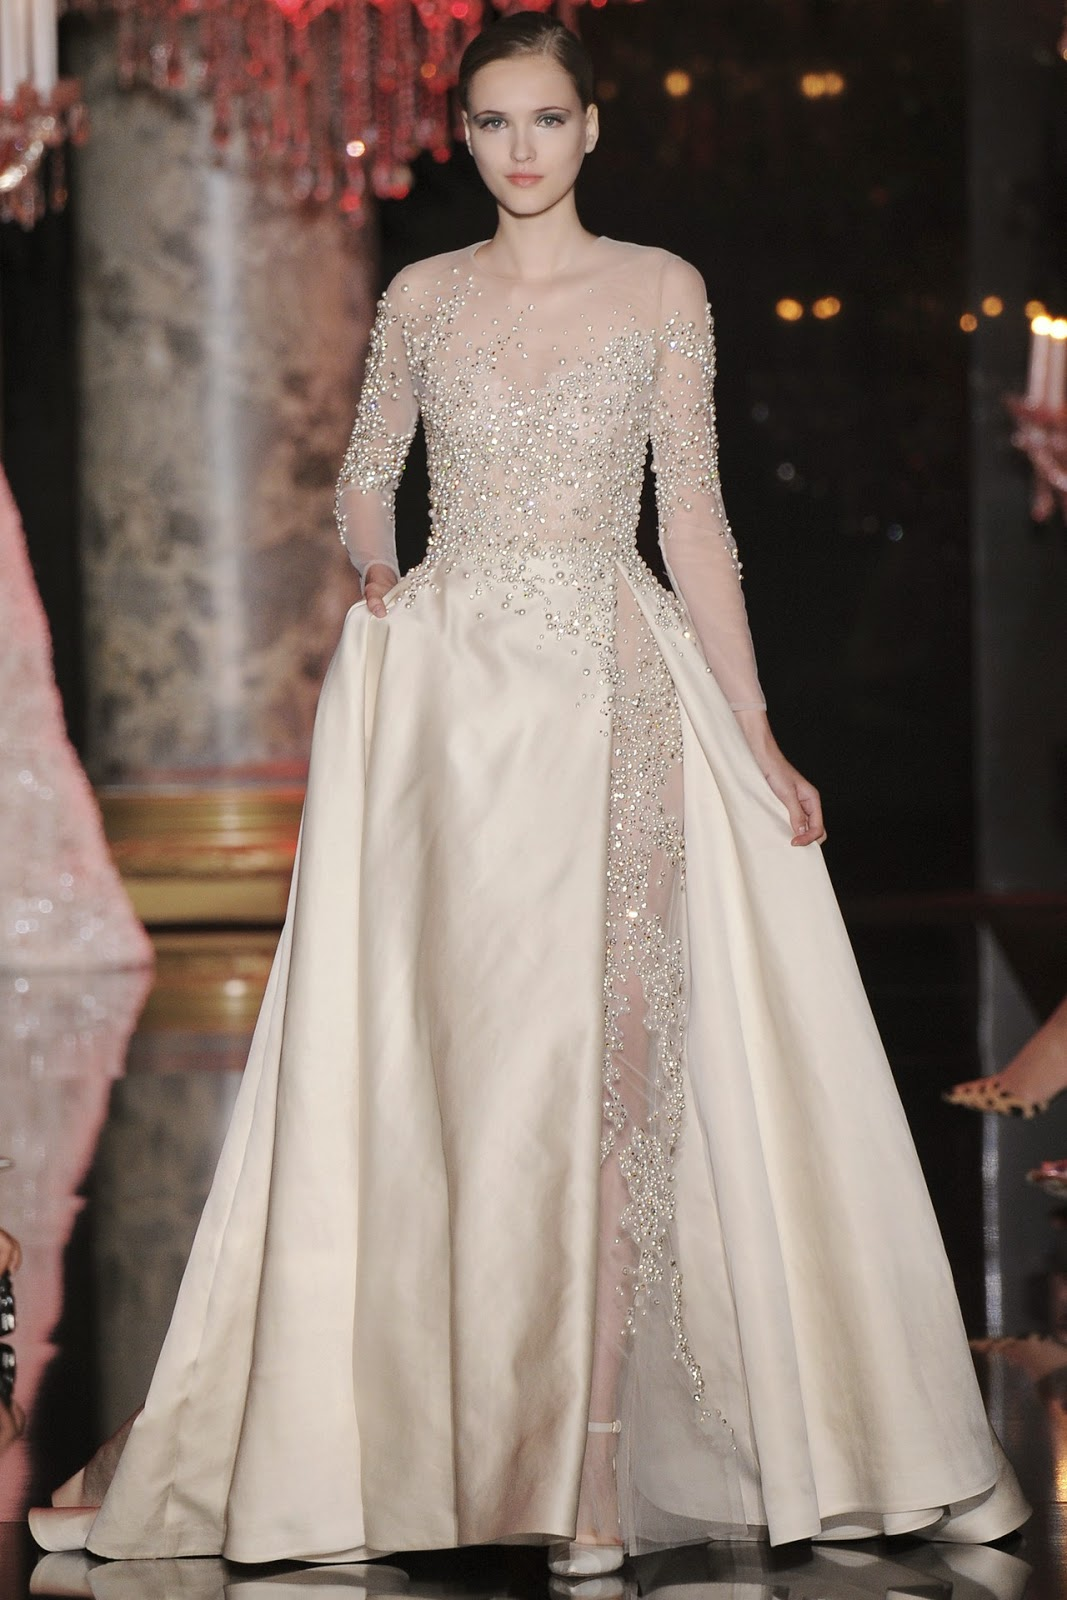 Modest Elie Sabb Haute Couture 2015 dress | Mode-sty #nolayering tznius tzniut jewish orthodox muslim islamic pentecostal mormon lds evangelical christian apostolic mission clothes Jerusalem trip hijab fashion modest muslimah hijabista bride